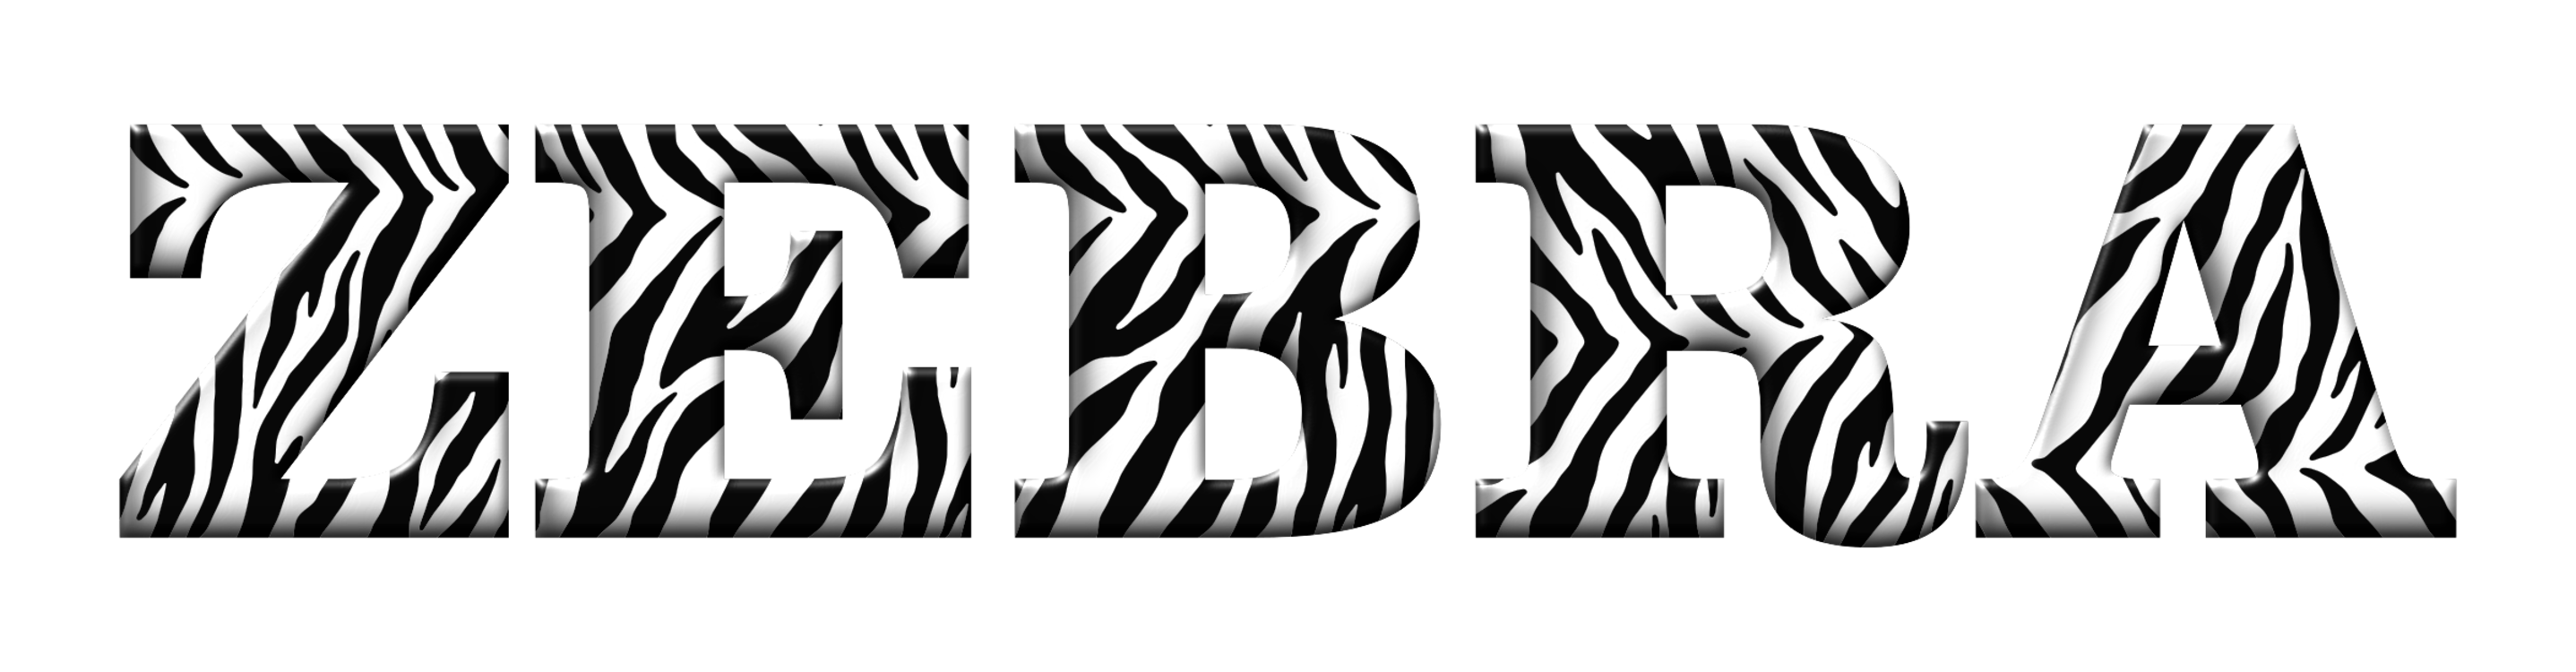 Typographic drawing text. Baby zebra computer icons